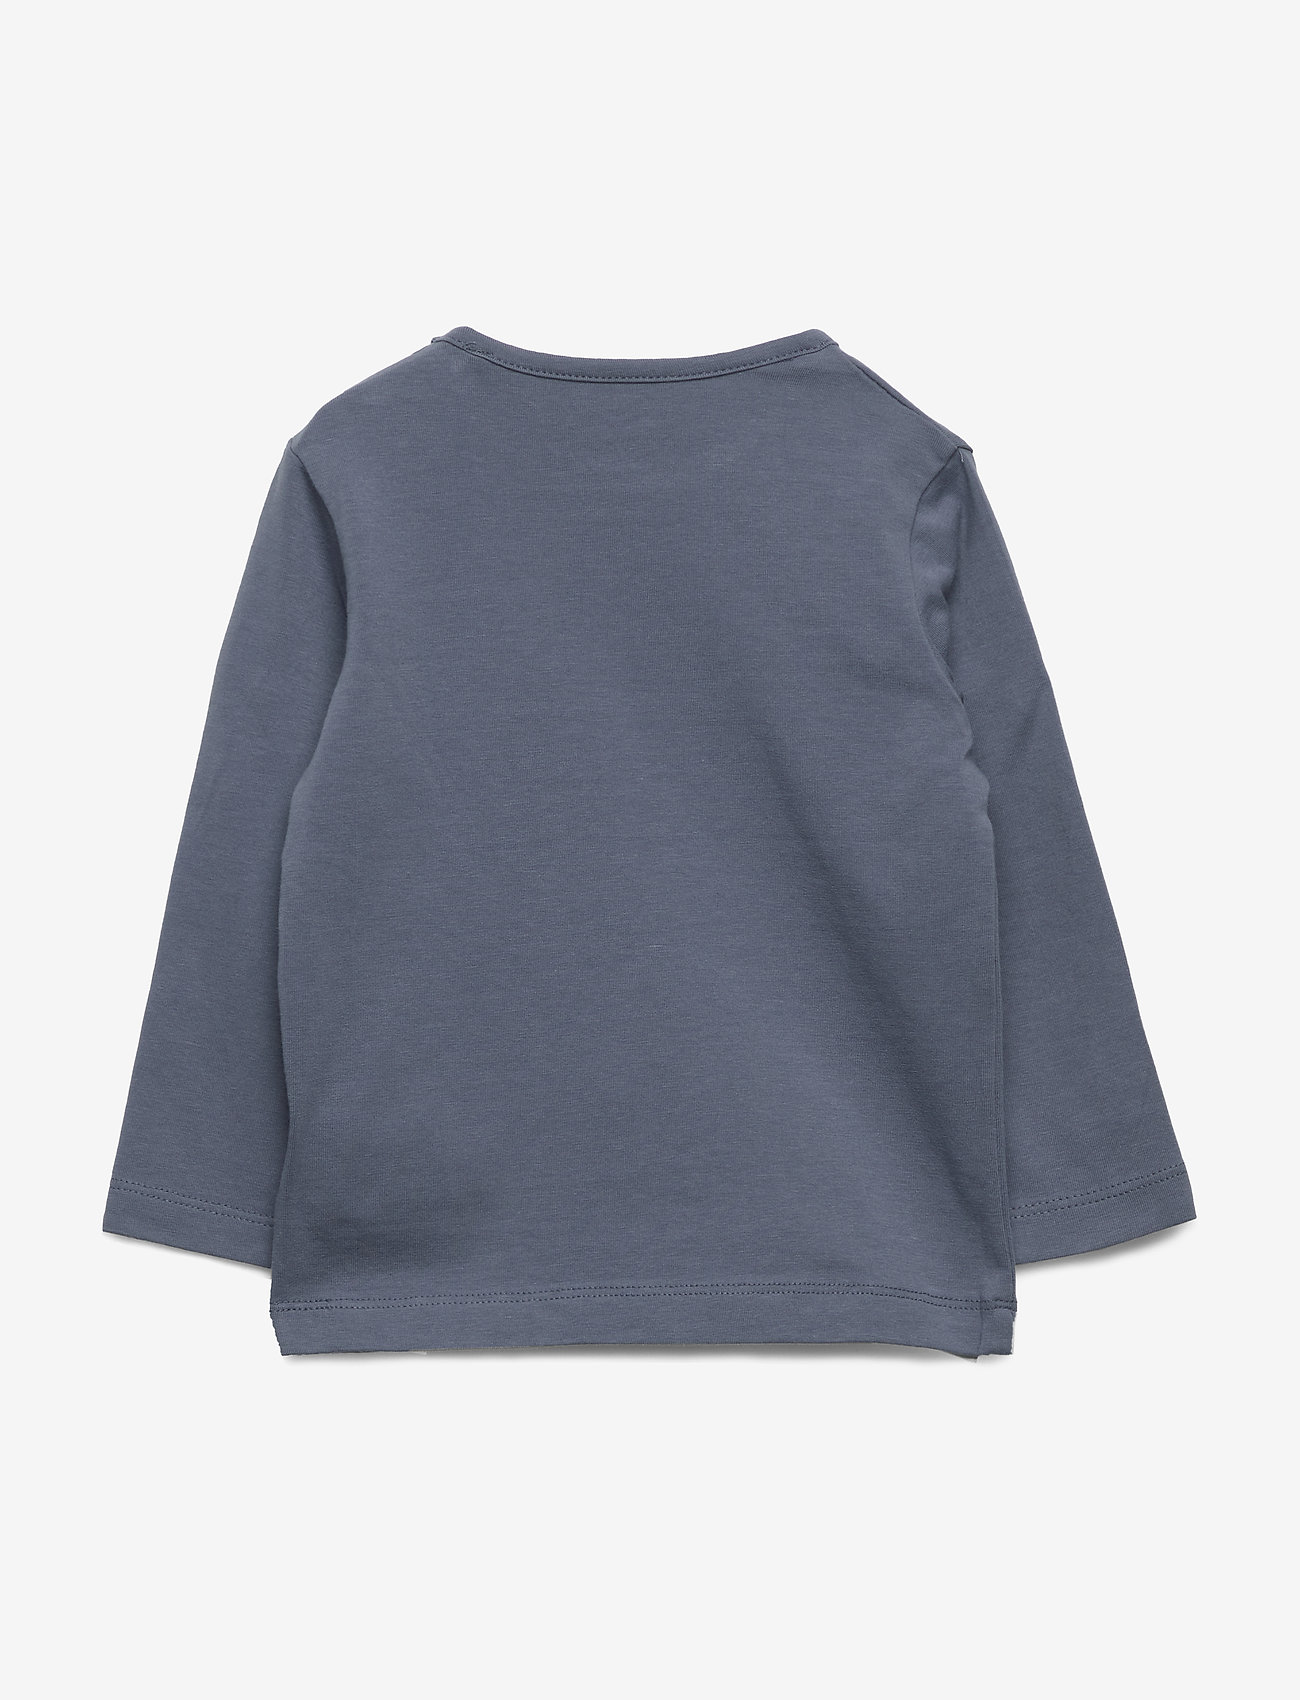 Petit by Sofie Schnoor - T-shirt LS - langærmede t-shirts - washed dusty blue - 1